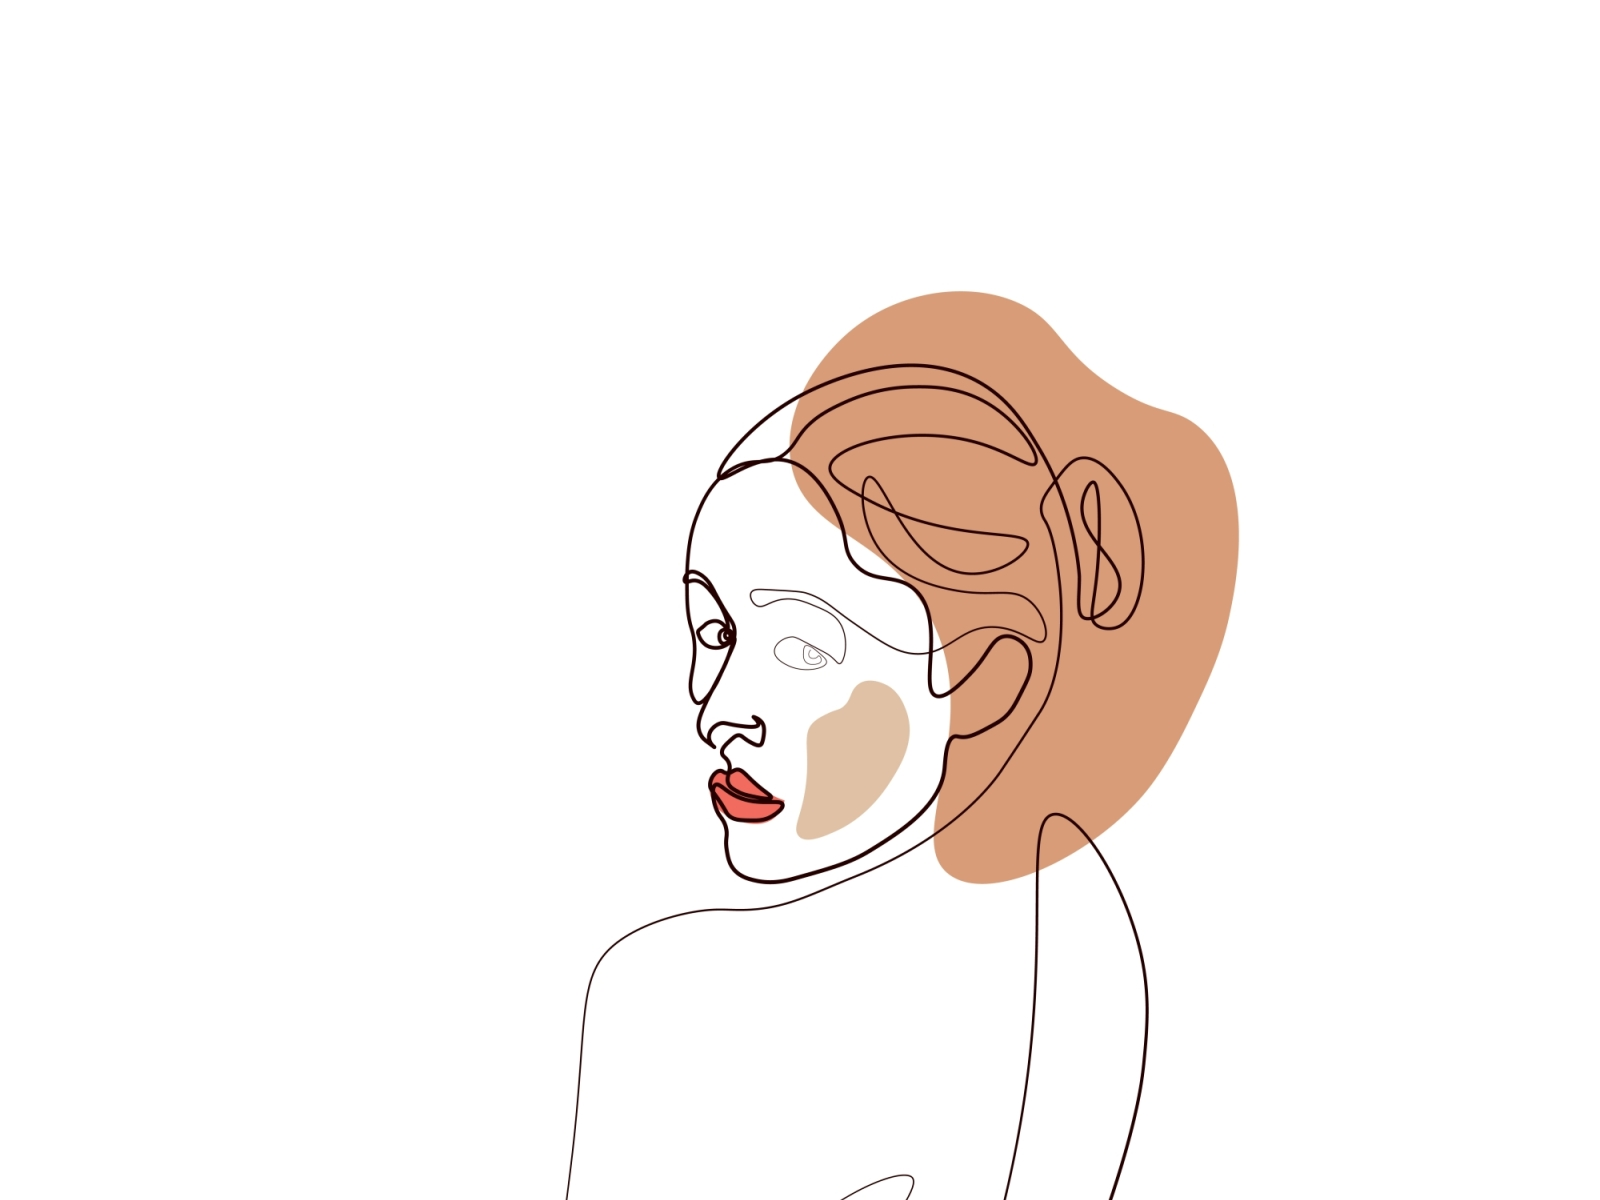 Continuous Line Drawing Of Set Faces And Sexy Body Fashion Con By Momixzaa On Dribbble